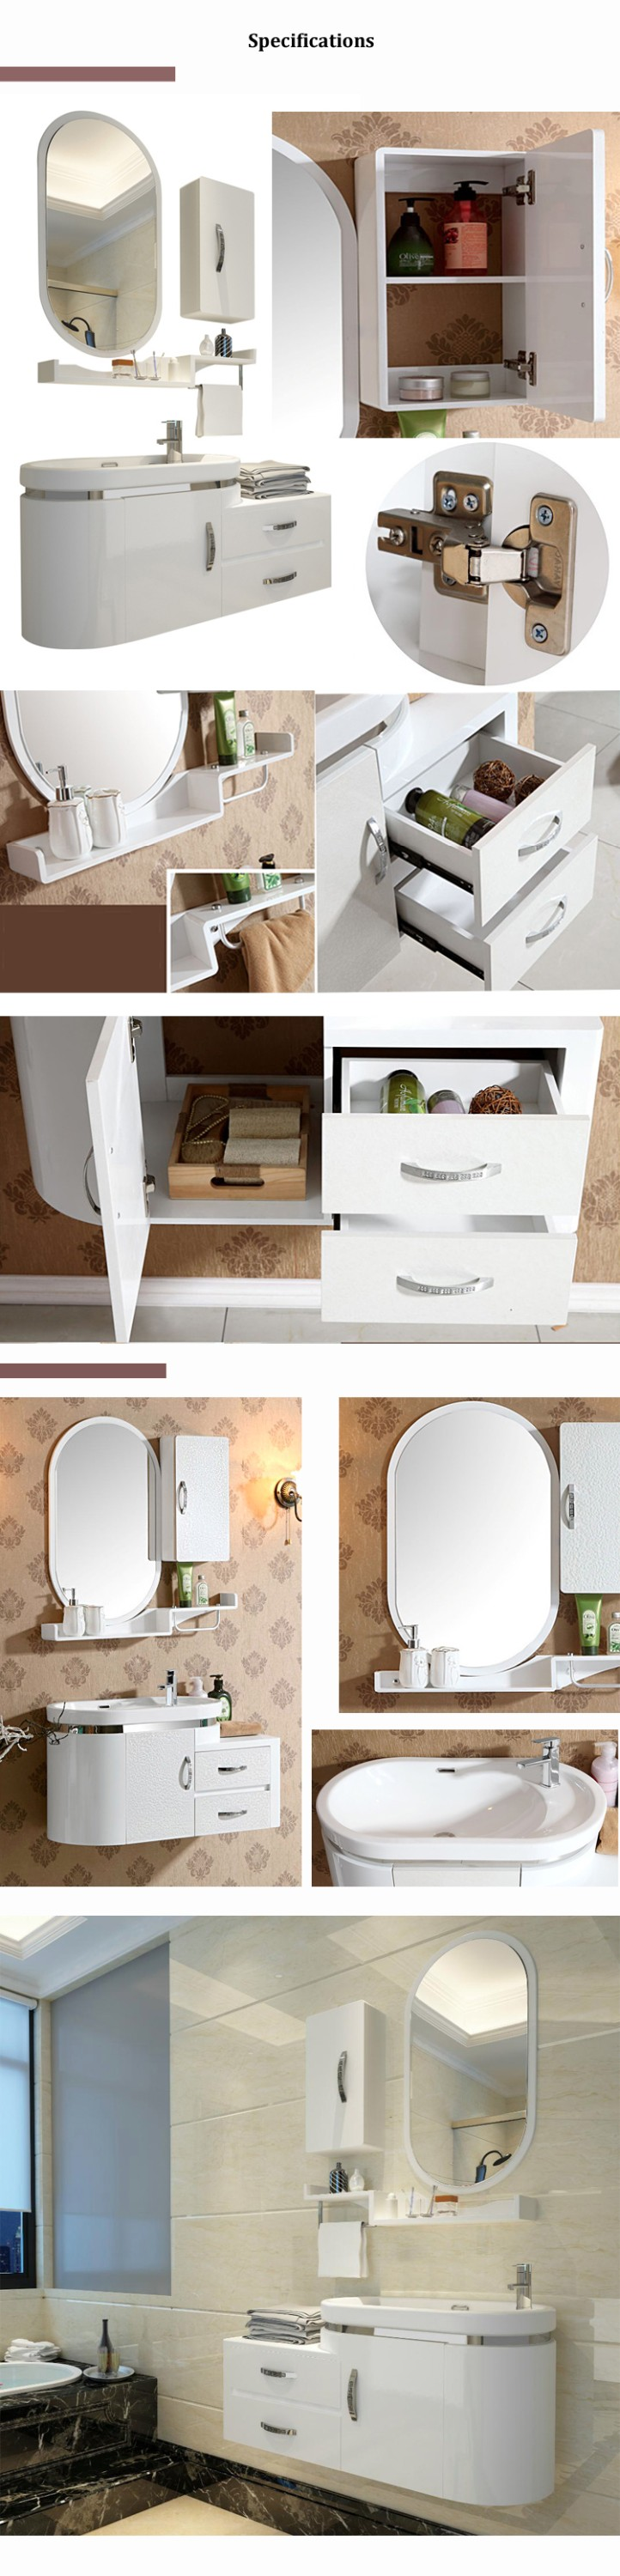 Qierao Modern Curved Irregular Shape German Style Bathroom Vanity Storage Qi Lw1706 Buy Irregular Shape Bathroom Vanity German Style Bathroom Vanity Bathroom Vanity Storage Product On Alibaba Com